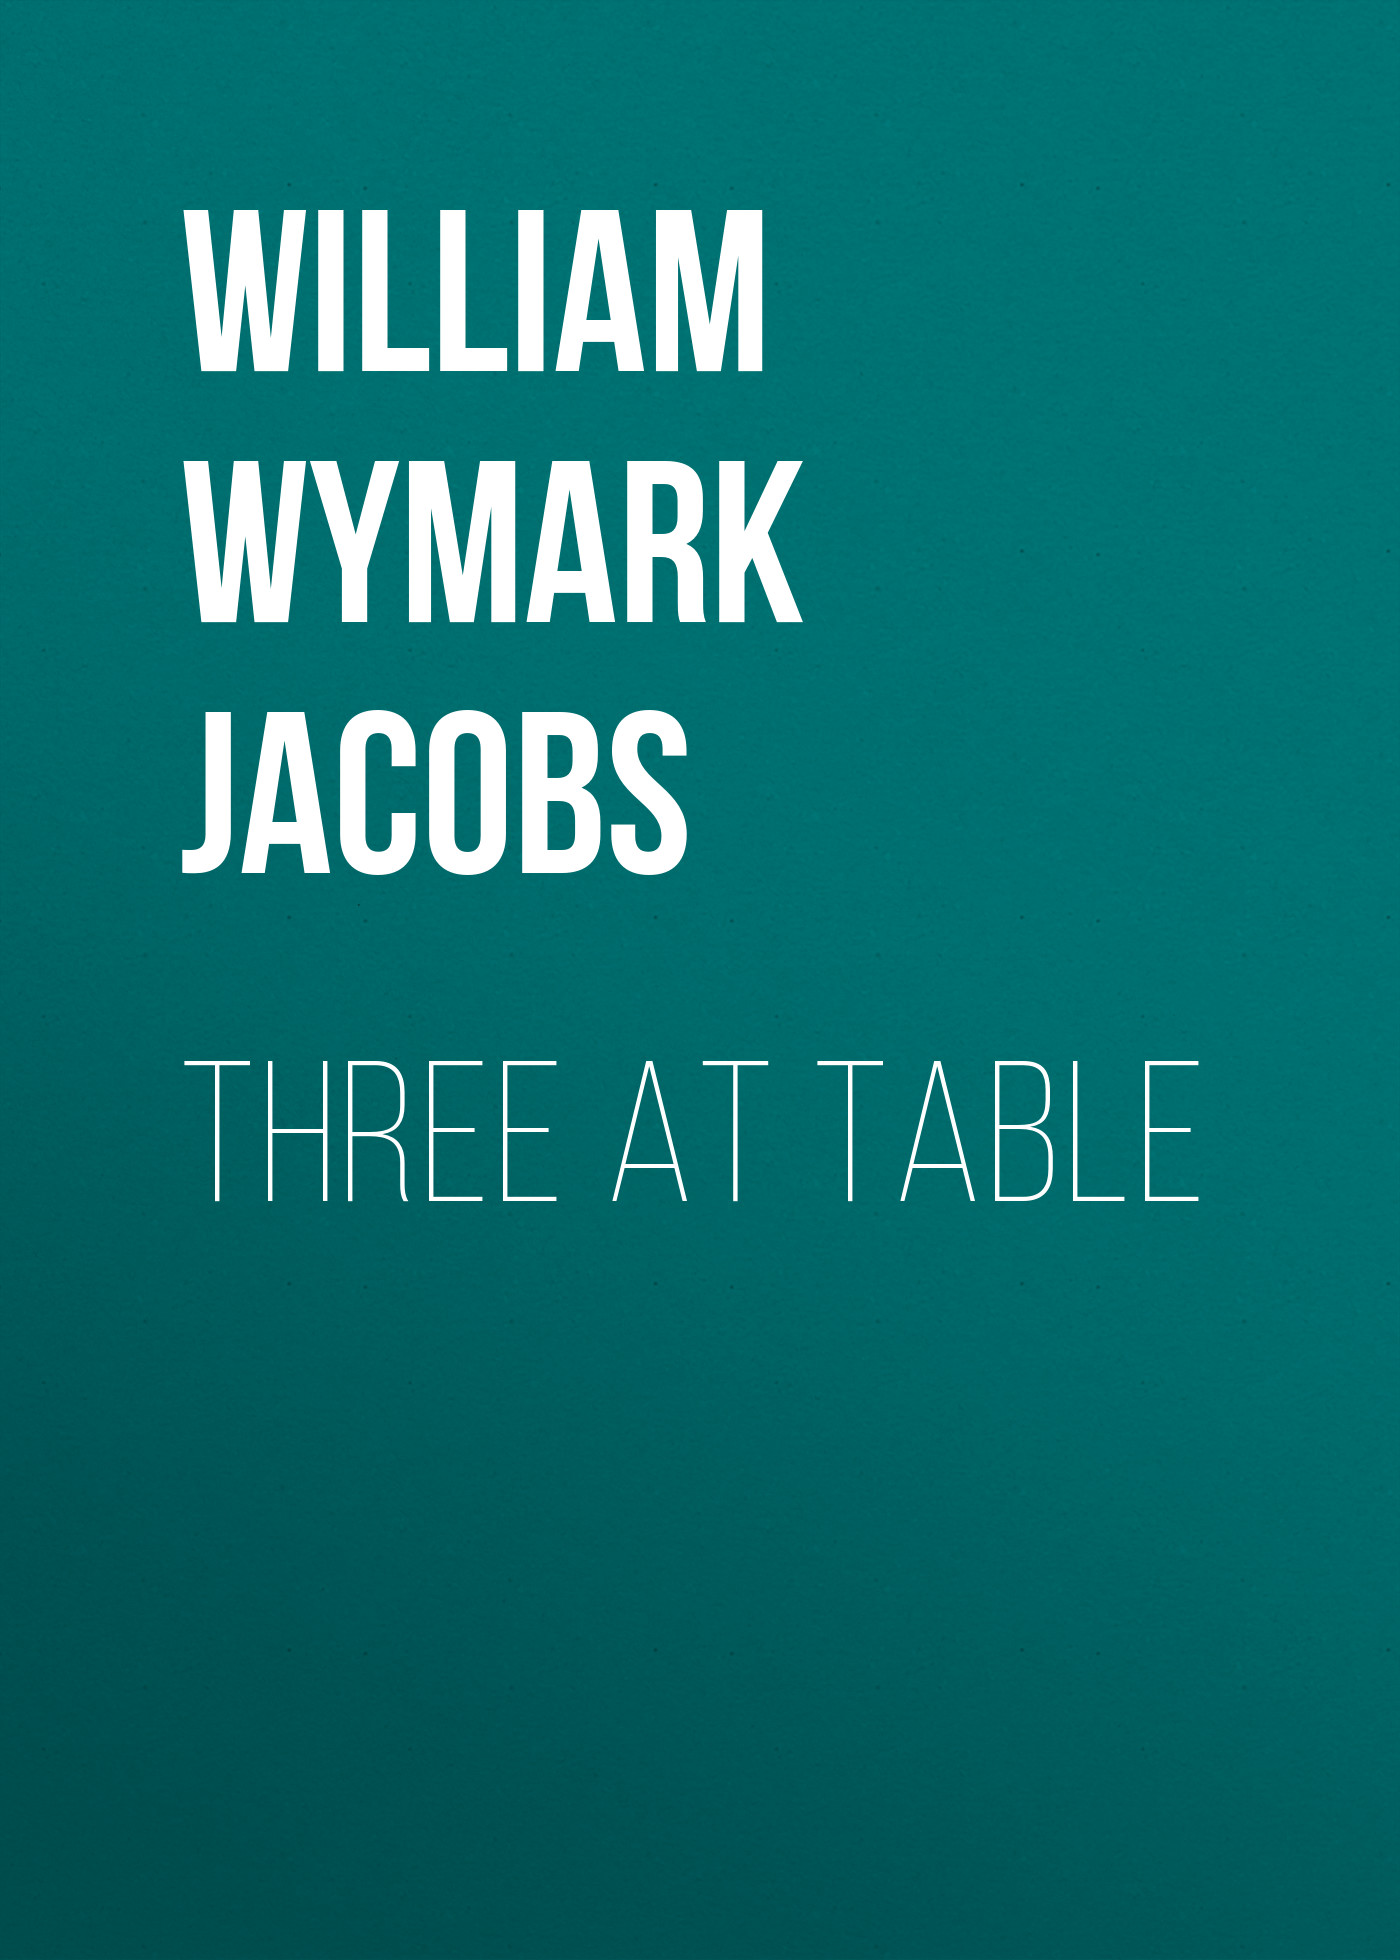 лучшая цена William Wymark Jacobs Three at Table